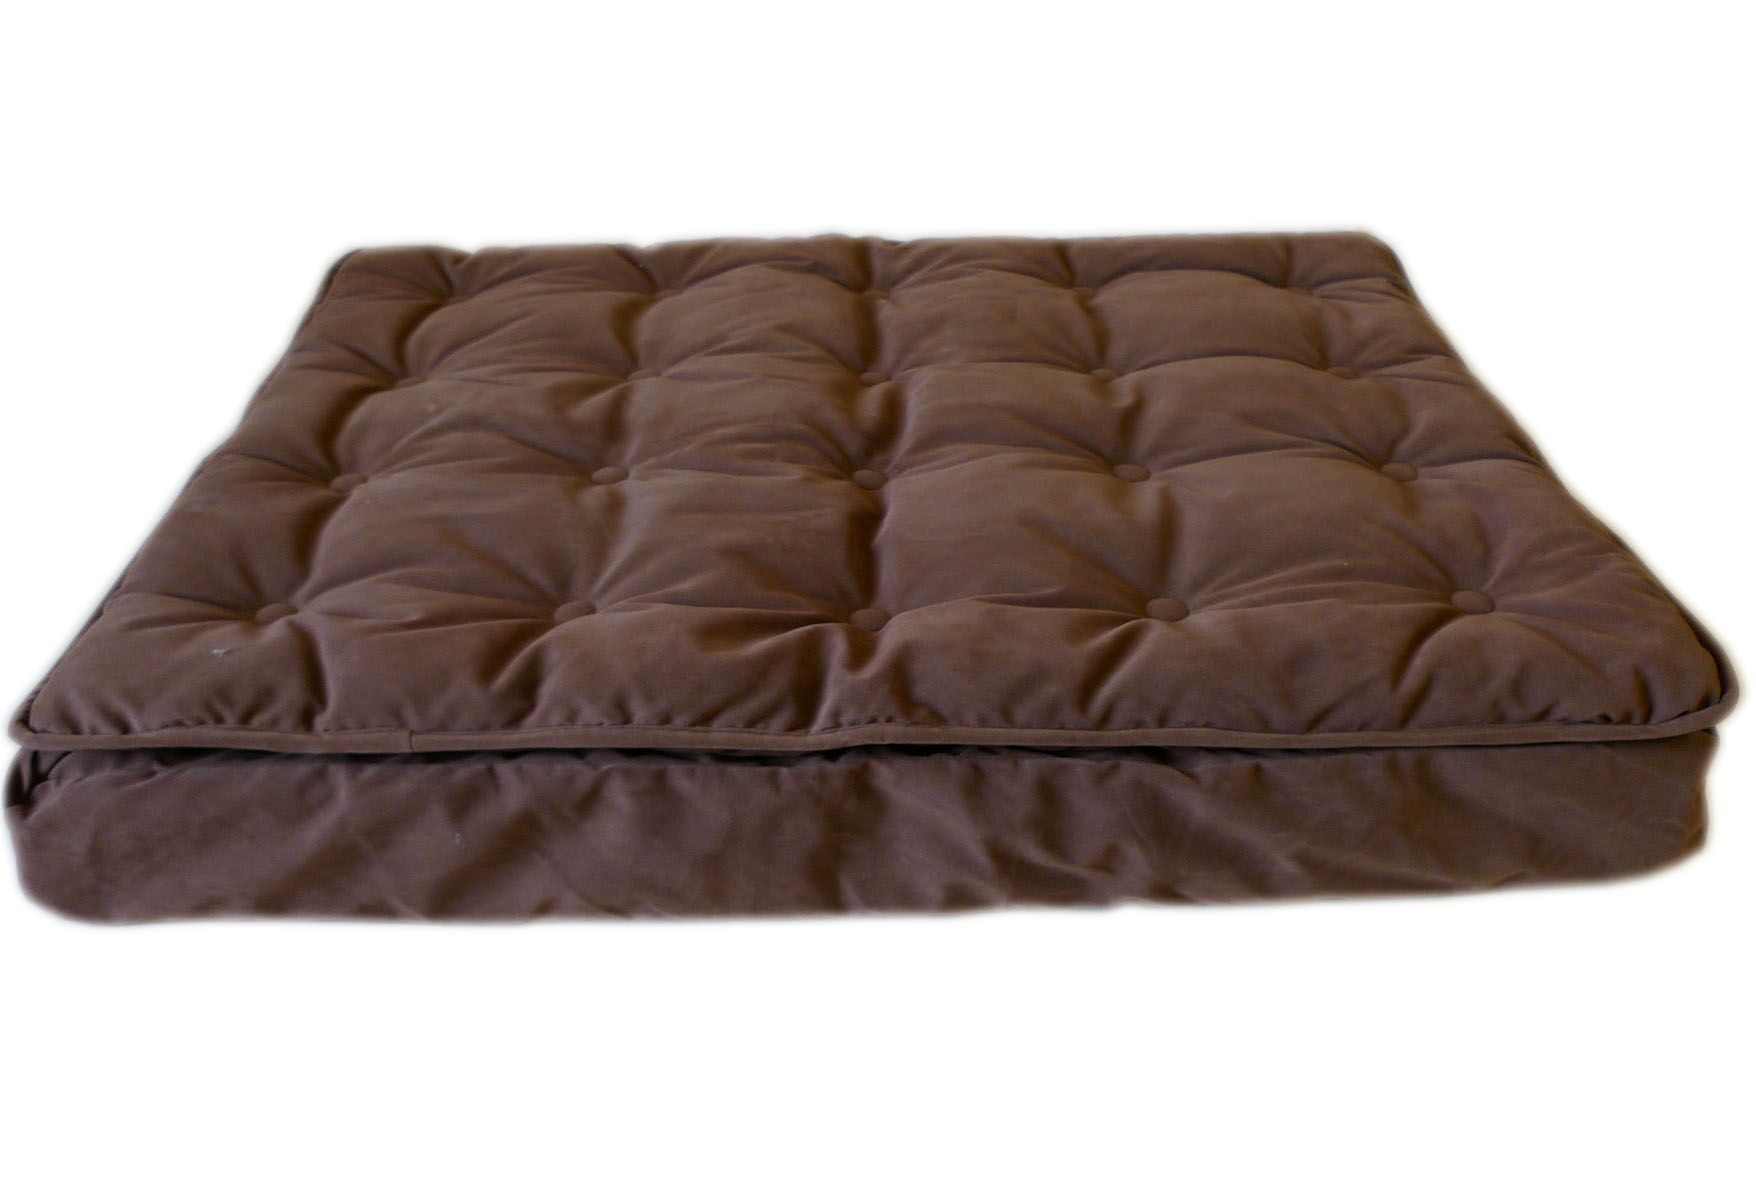 Luxury Pillow Top Mattress Pet Bed in Chocolate Size: Large